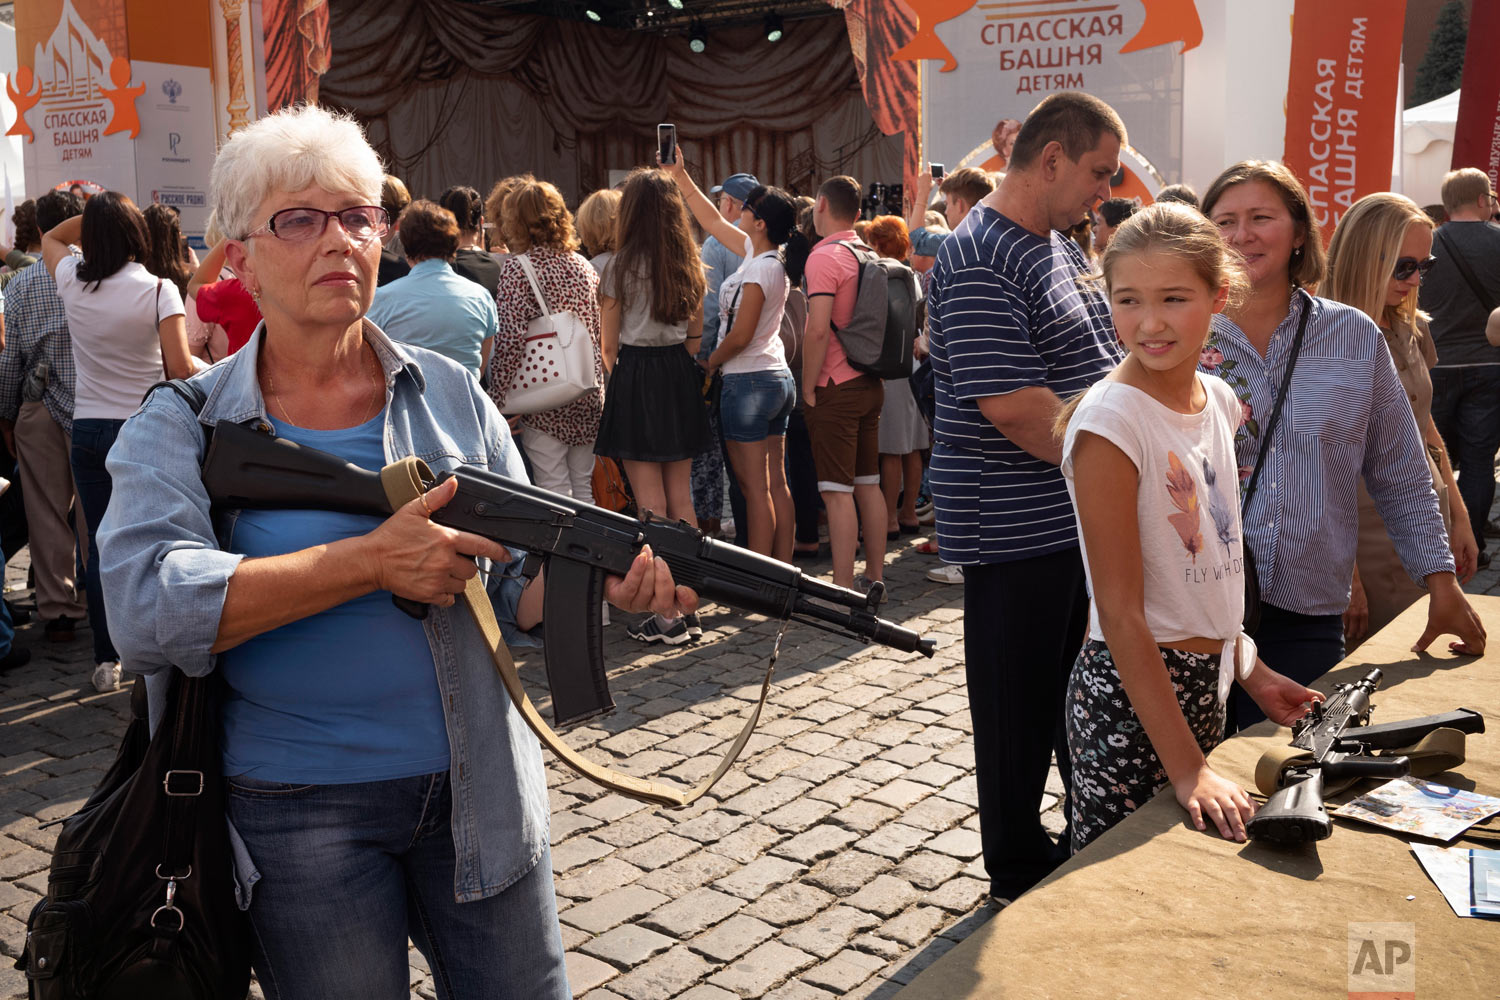 A woman holds a Kalashnikov assault rifle during the Spasskaya Tower international military music festival in Red Square in Moscow, Russia, Friday, Aug. 31, 2018. (AP Photo/Alexander Zemlianichenko)